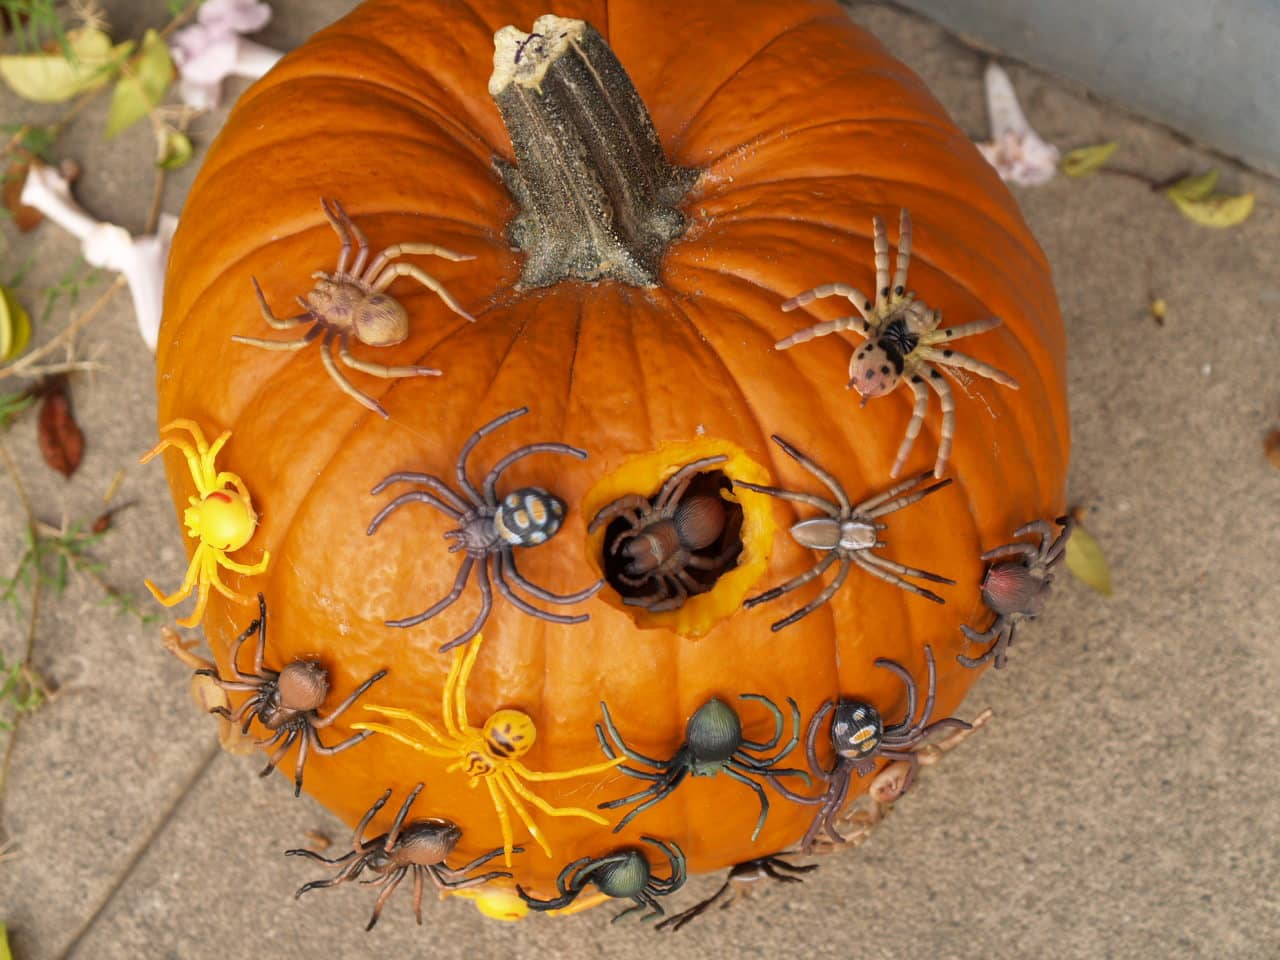 Halloween Pumpkin with Spiders